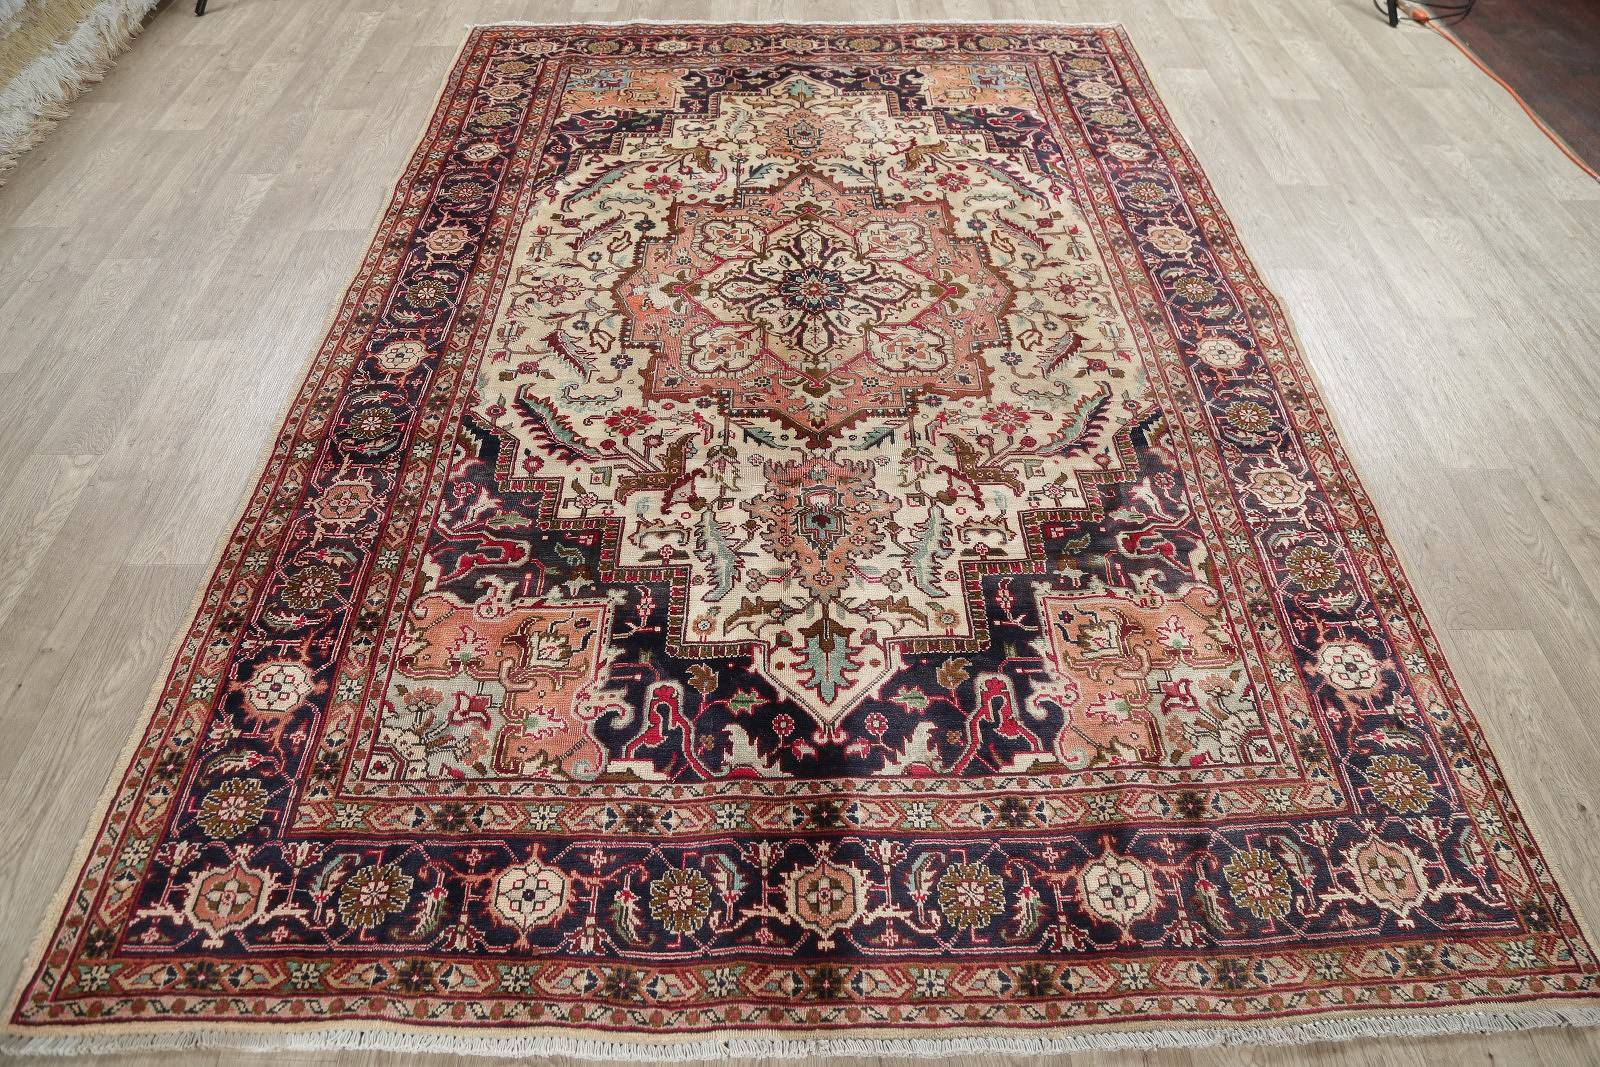 One-of-a-Kind Antique Heriz Serapi Persian Hand-Knotted 7x9 Wool Area Rug